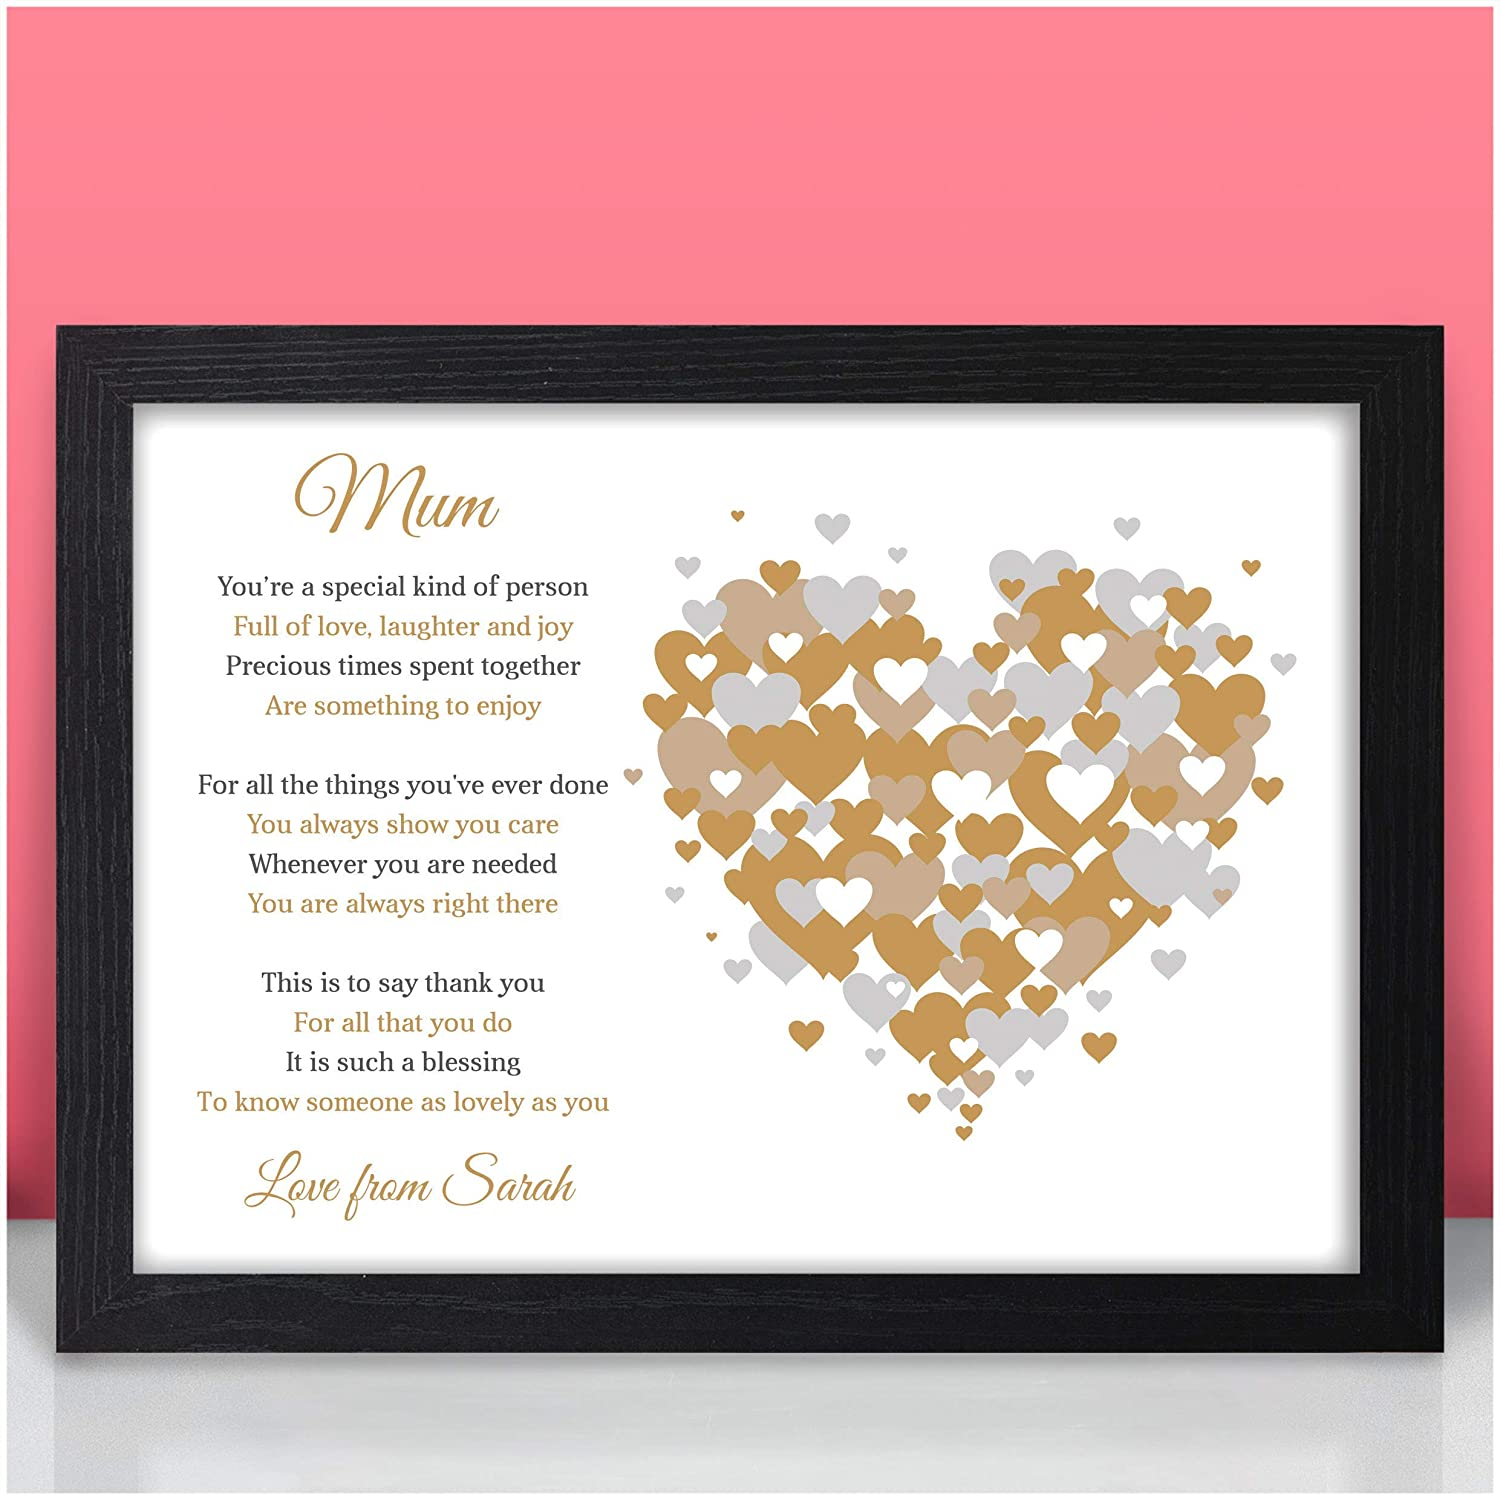 Ladies Christmas Gifts.Personalised Christmas Gifts For Her Women Ladies Xmas